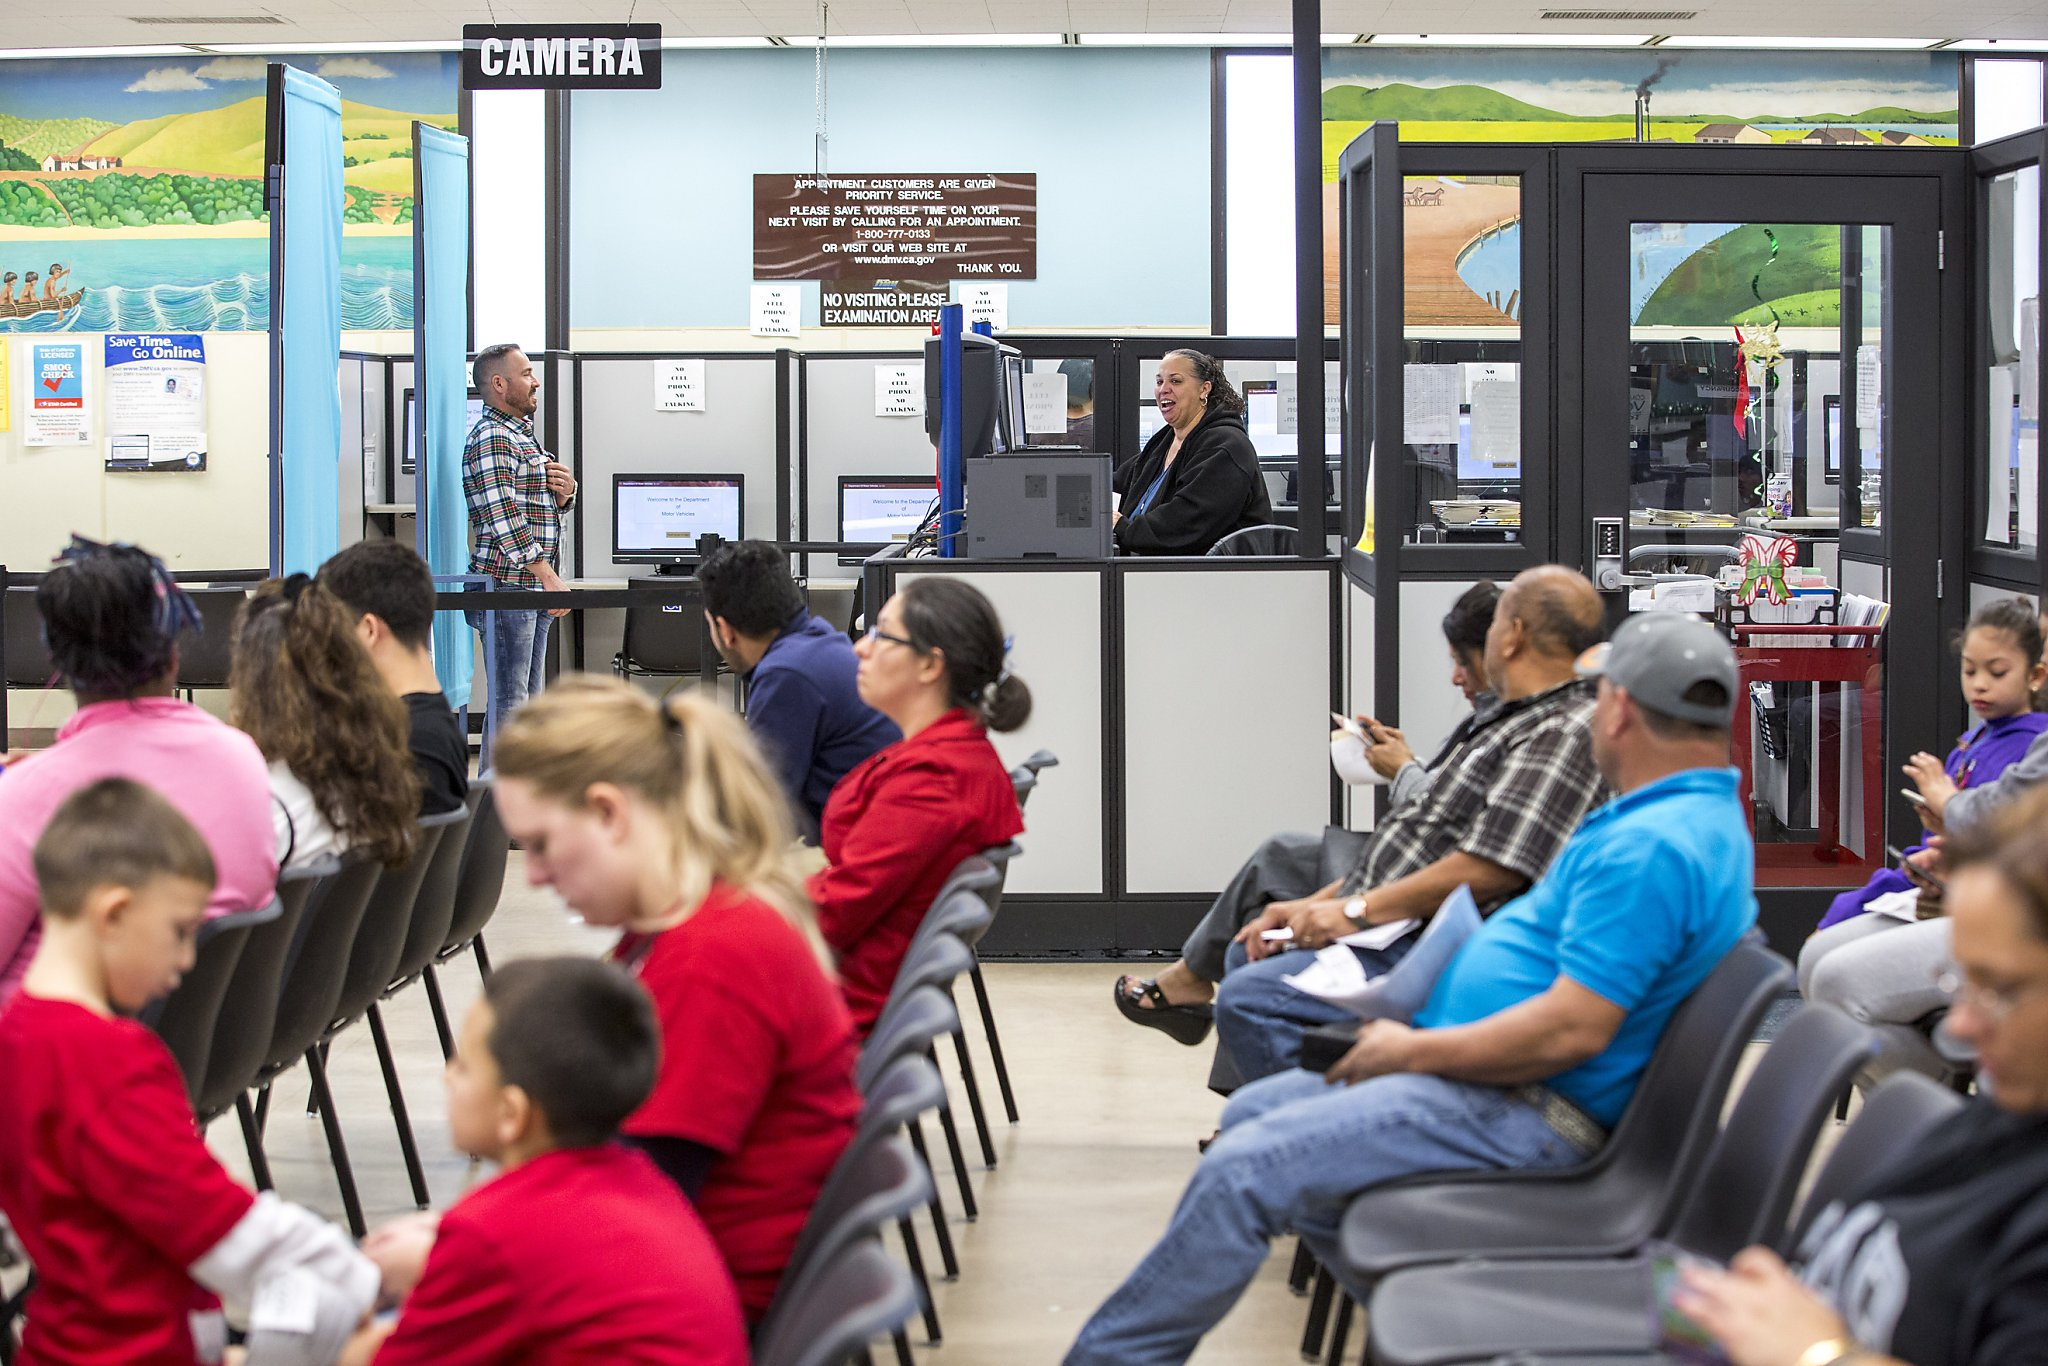 California DMV may have botched 23,000 voter registrations